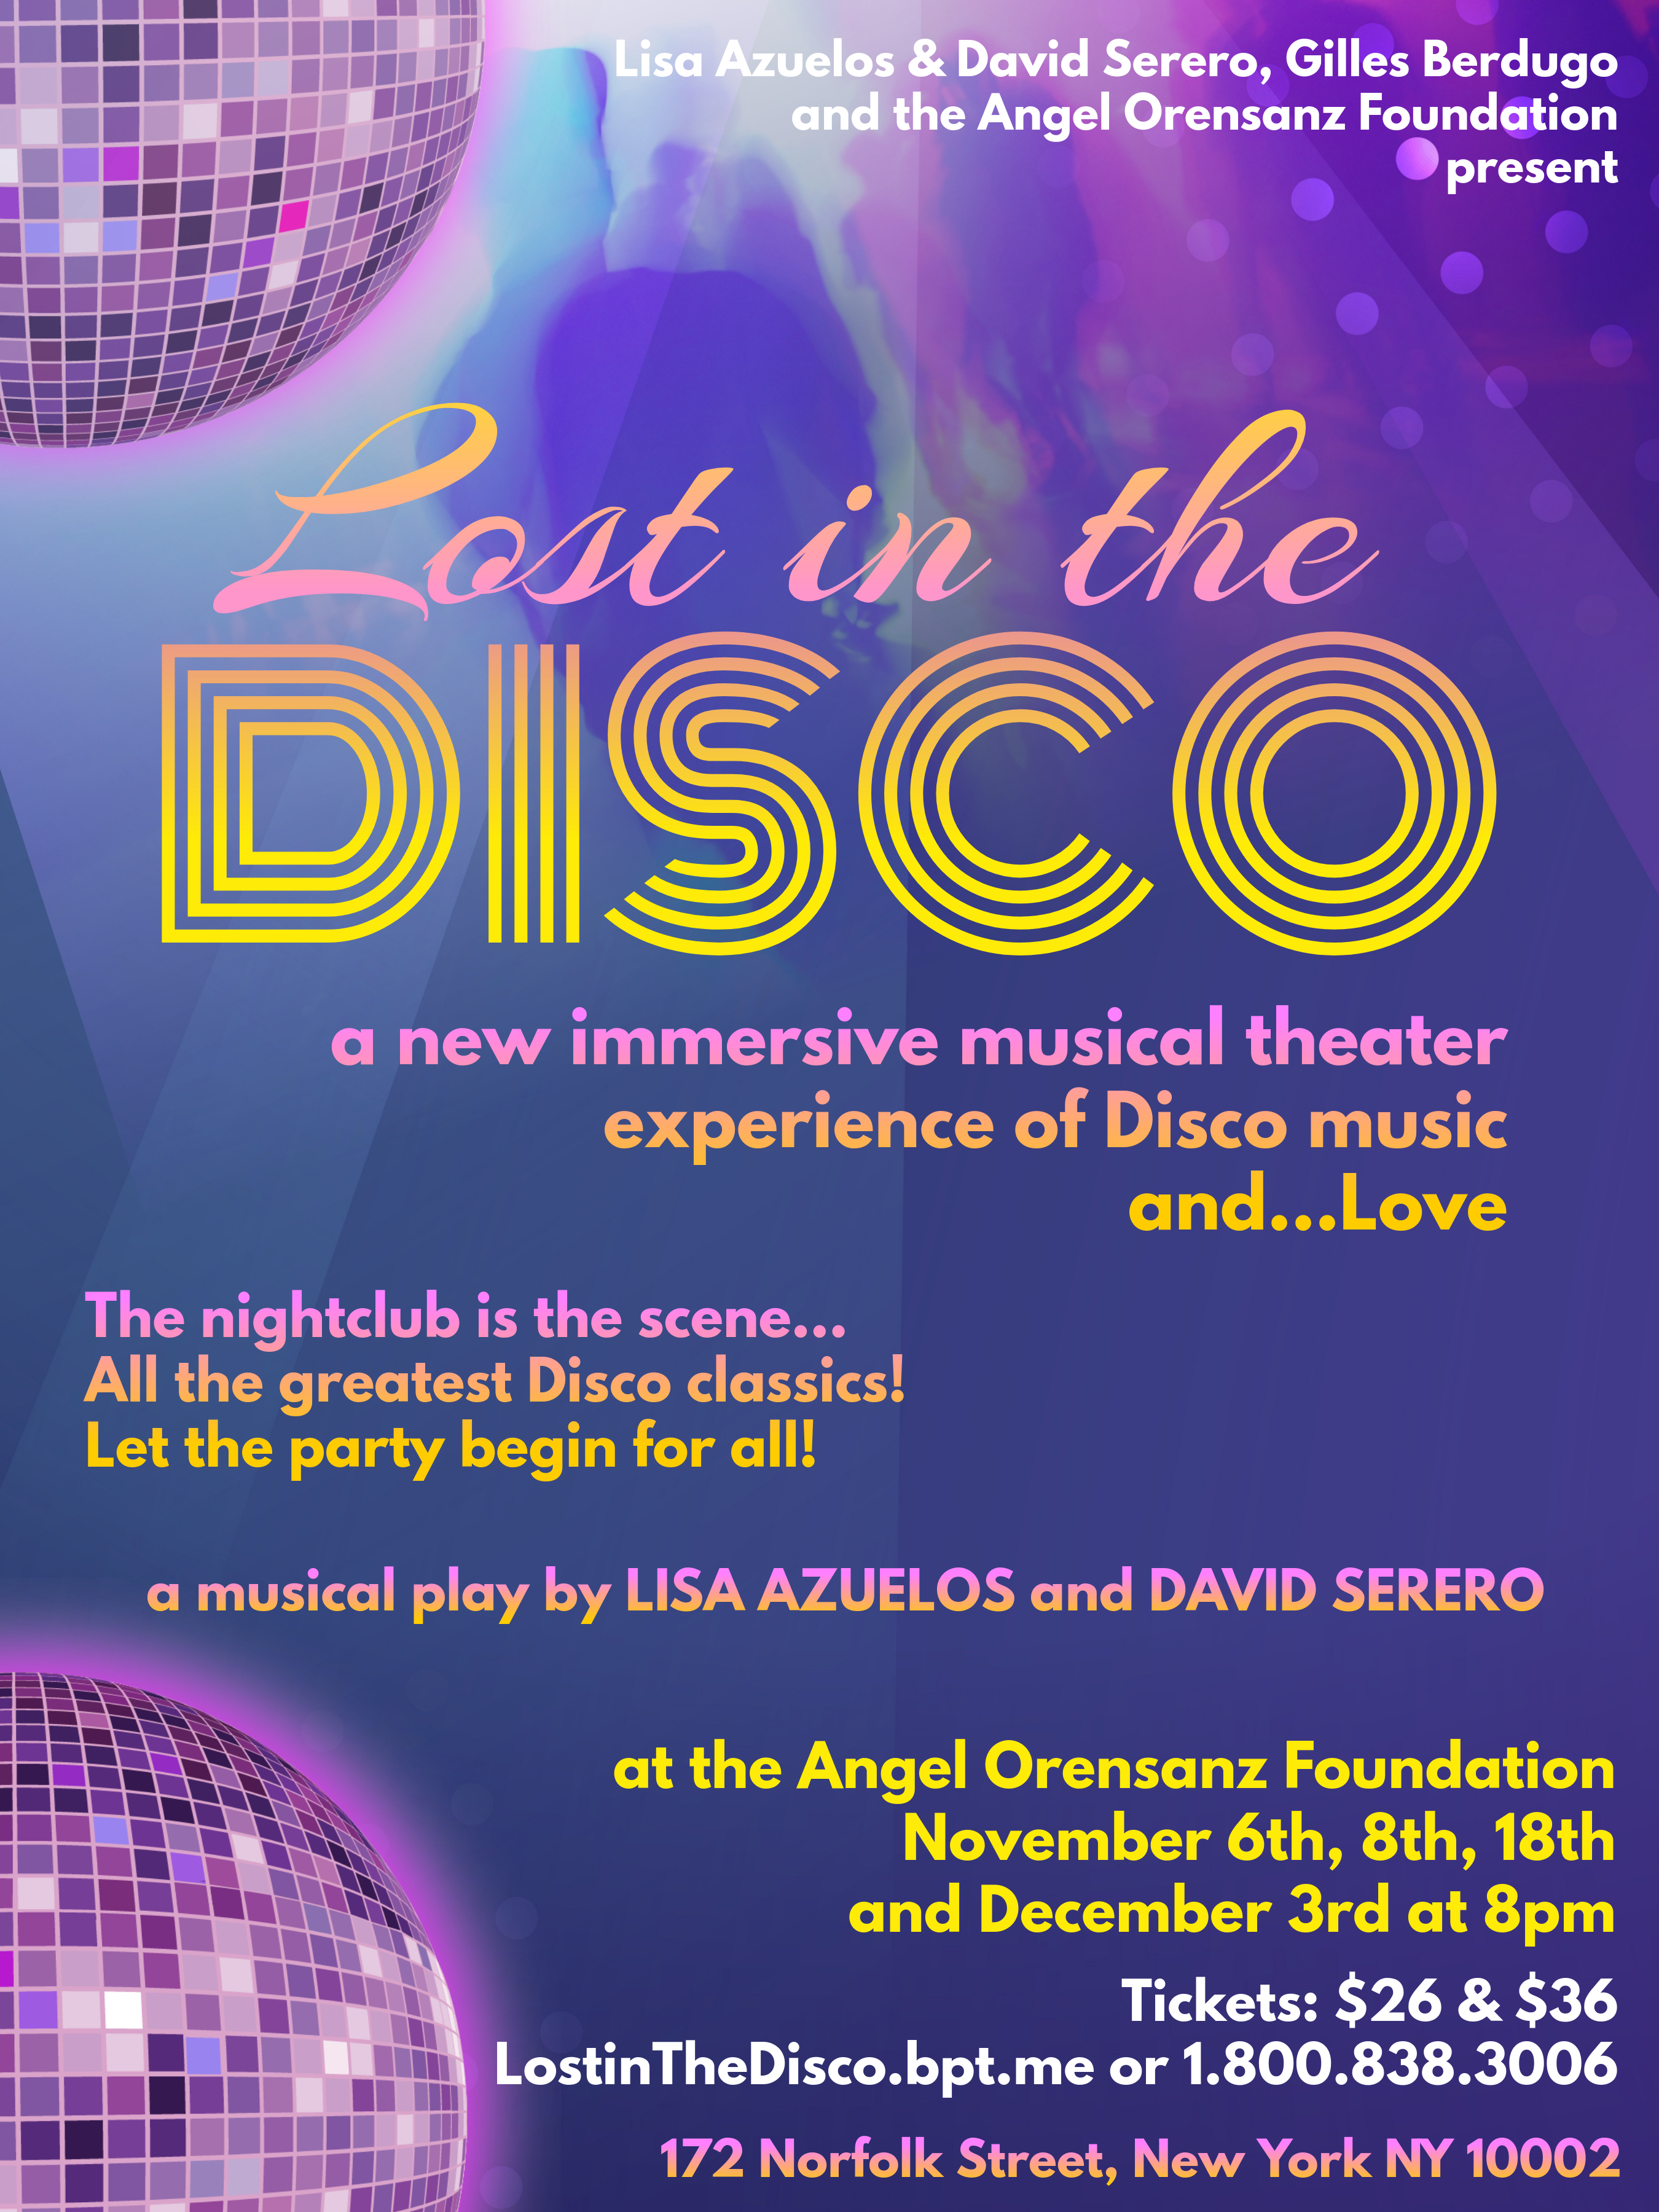 LOST IN THE DISCO an immersive musical around Disco music coming Off-Broadway this November